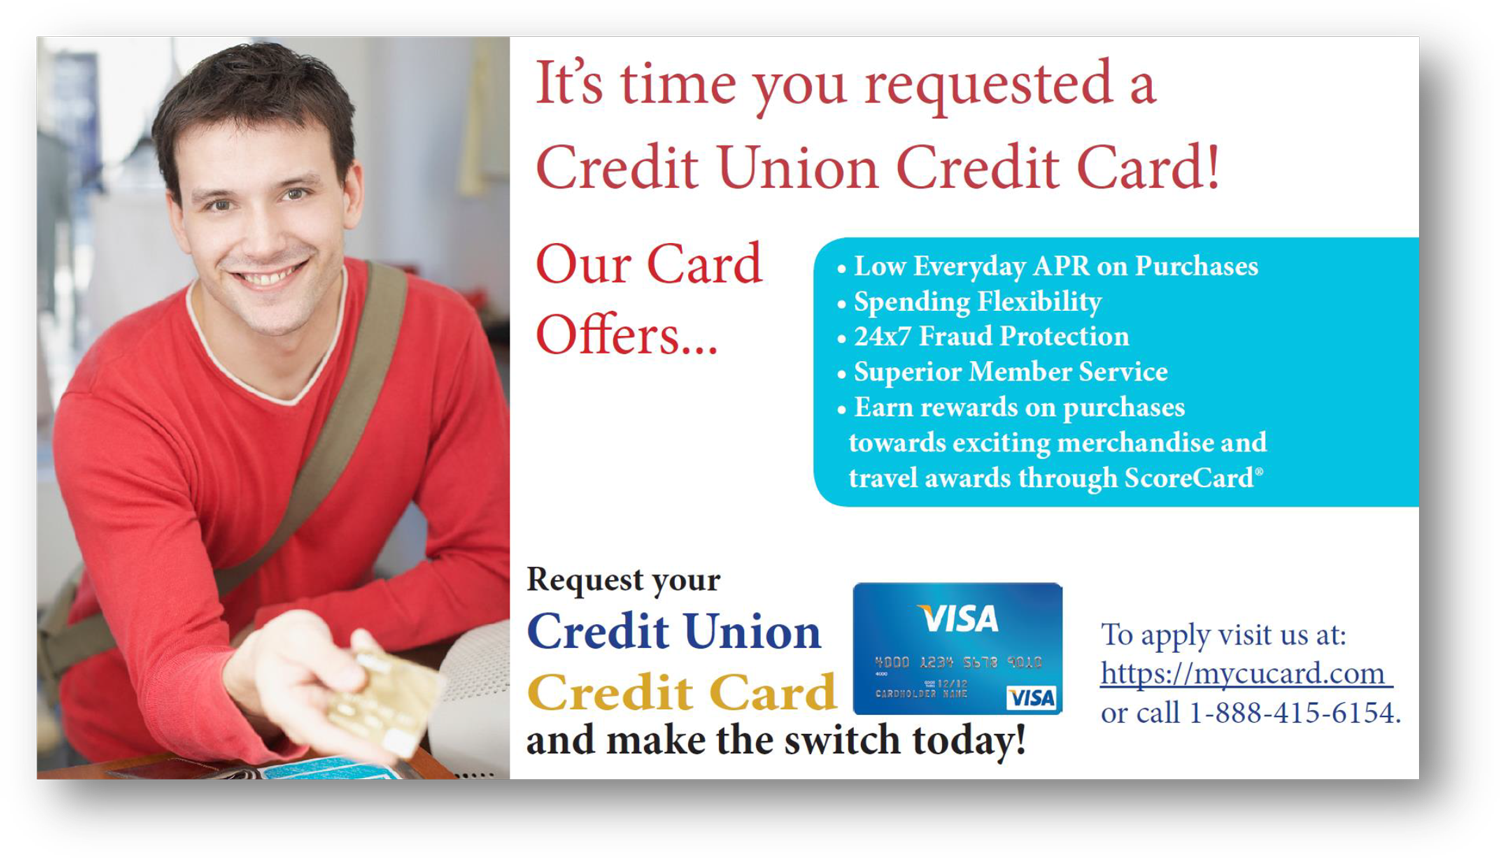 It is time you requested a credit union credit card!  Our card offers low everyday APR on purchases, spending flexibility, 24/7 fraud protection, superior member service, earn rewards on purchases towards exciting merchandise and travel awards through ScoreCard registered. Request your credit union visa credit card today. To apply, visit us at: mycucard.com or call 1-888-415-6154.